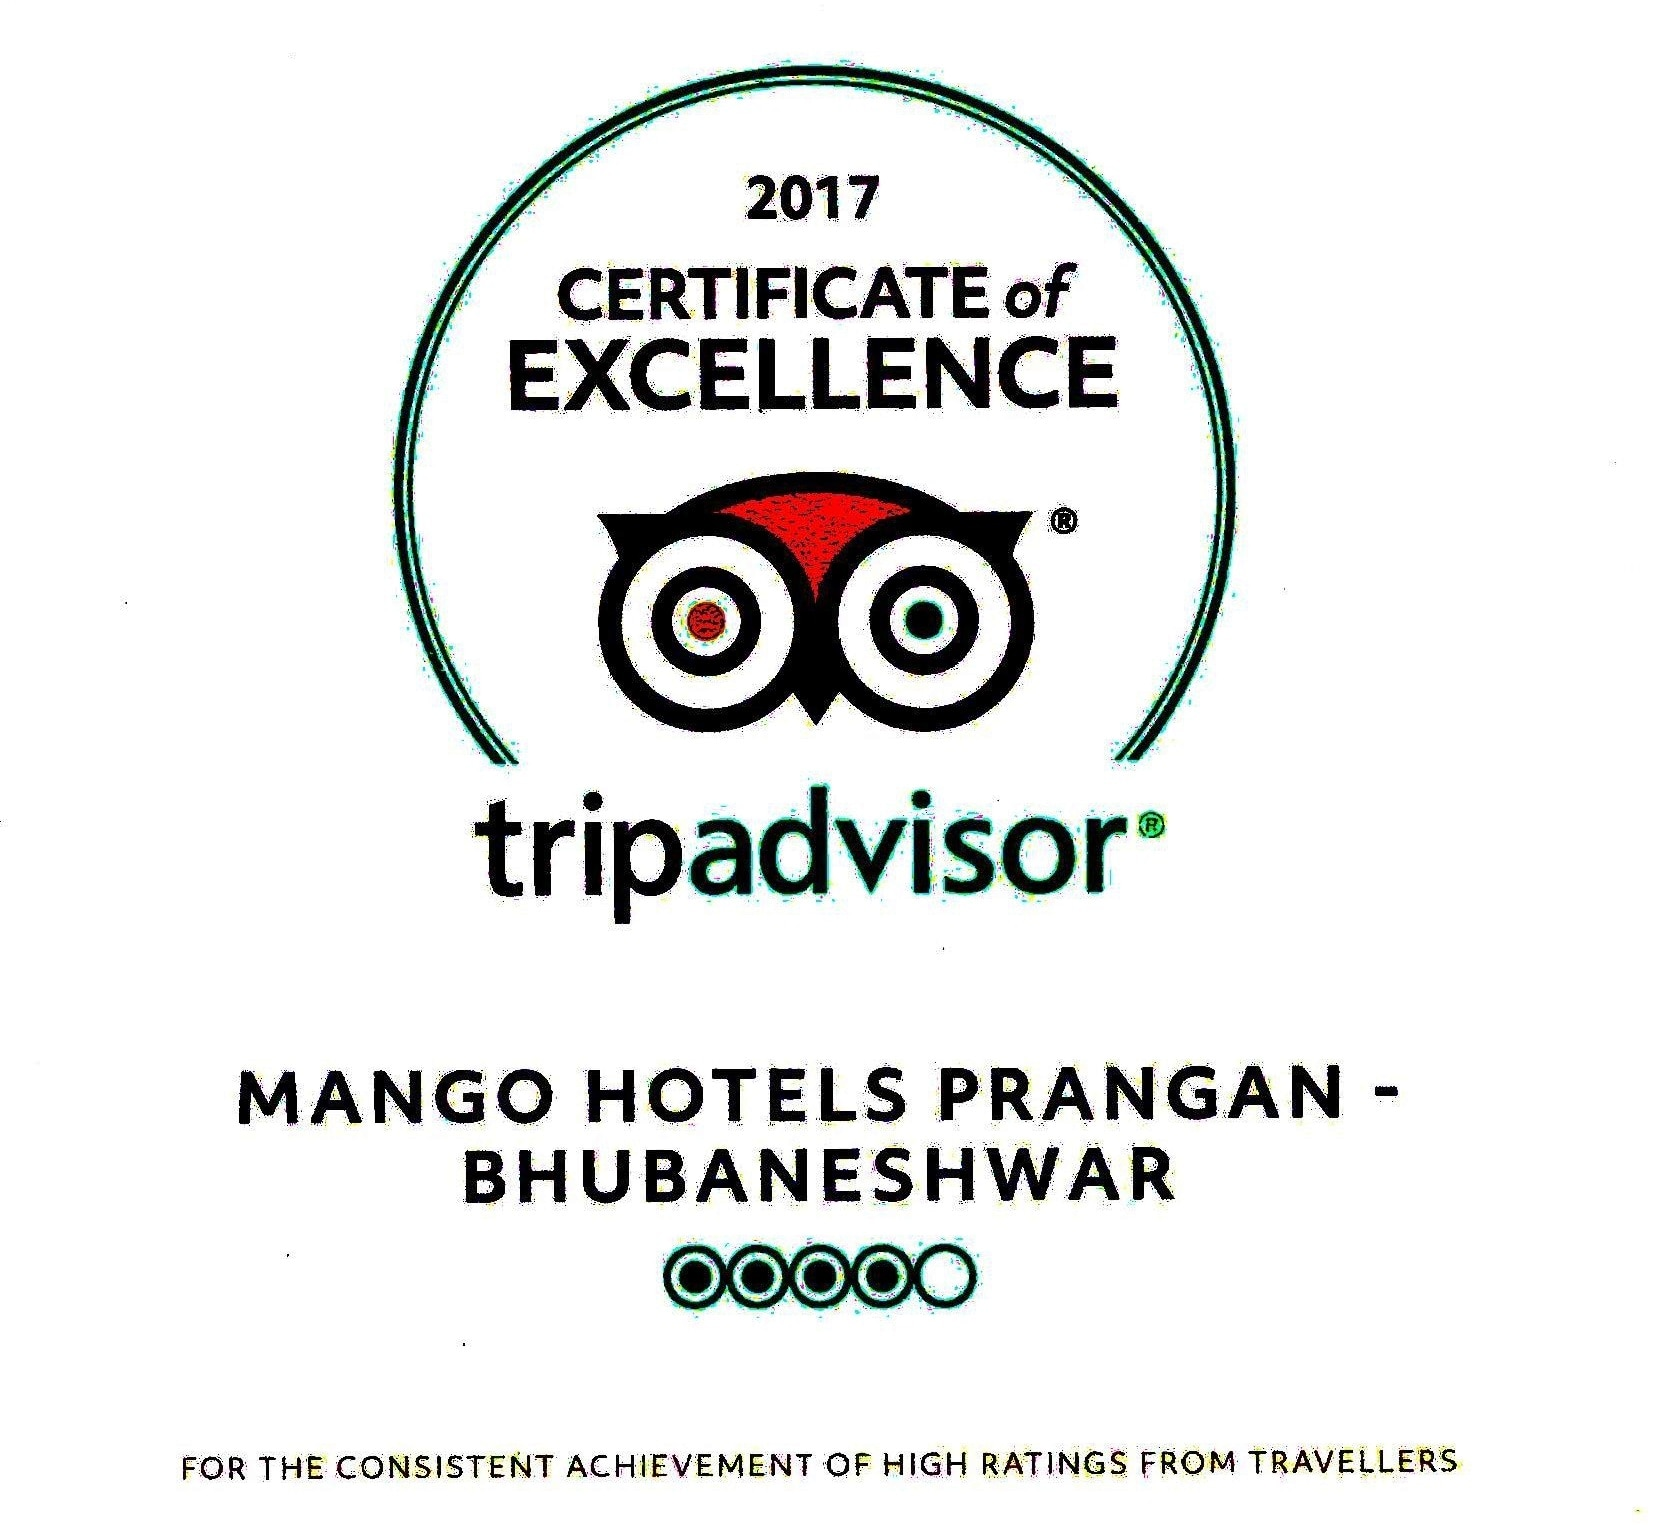 Updates Certificate Of Excellence From Prangan By Mango Hotels